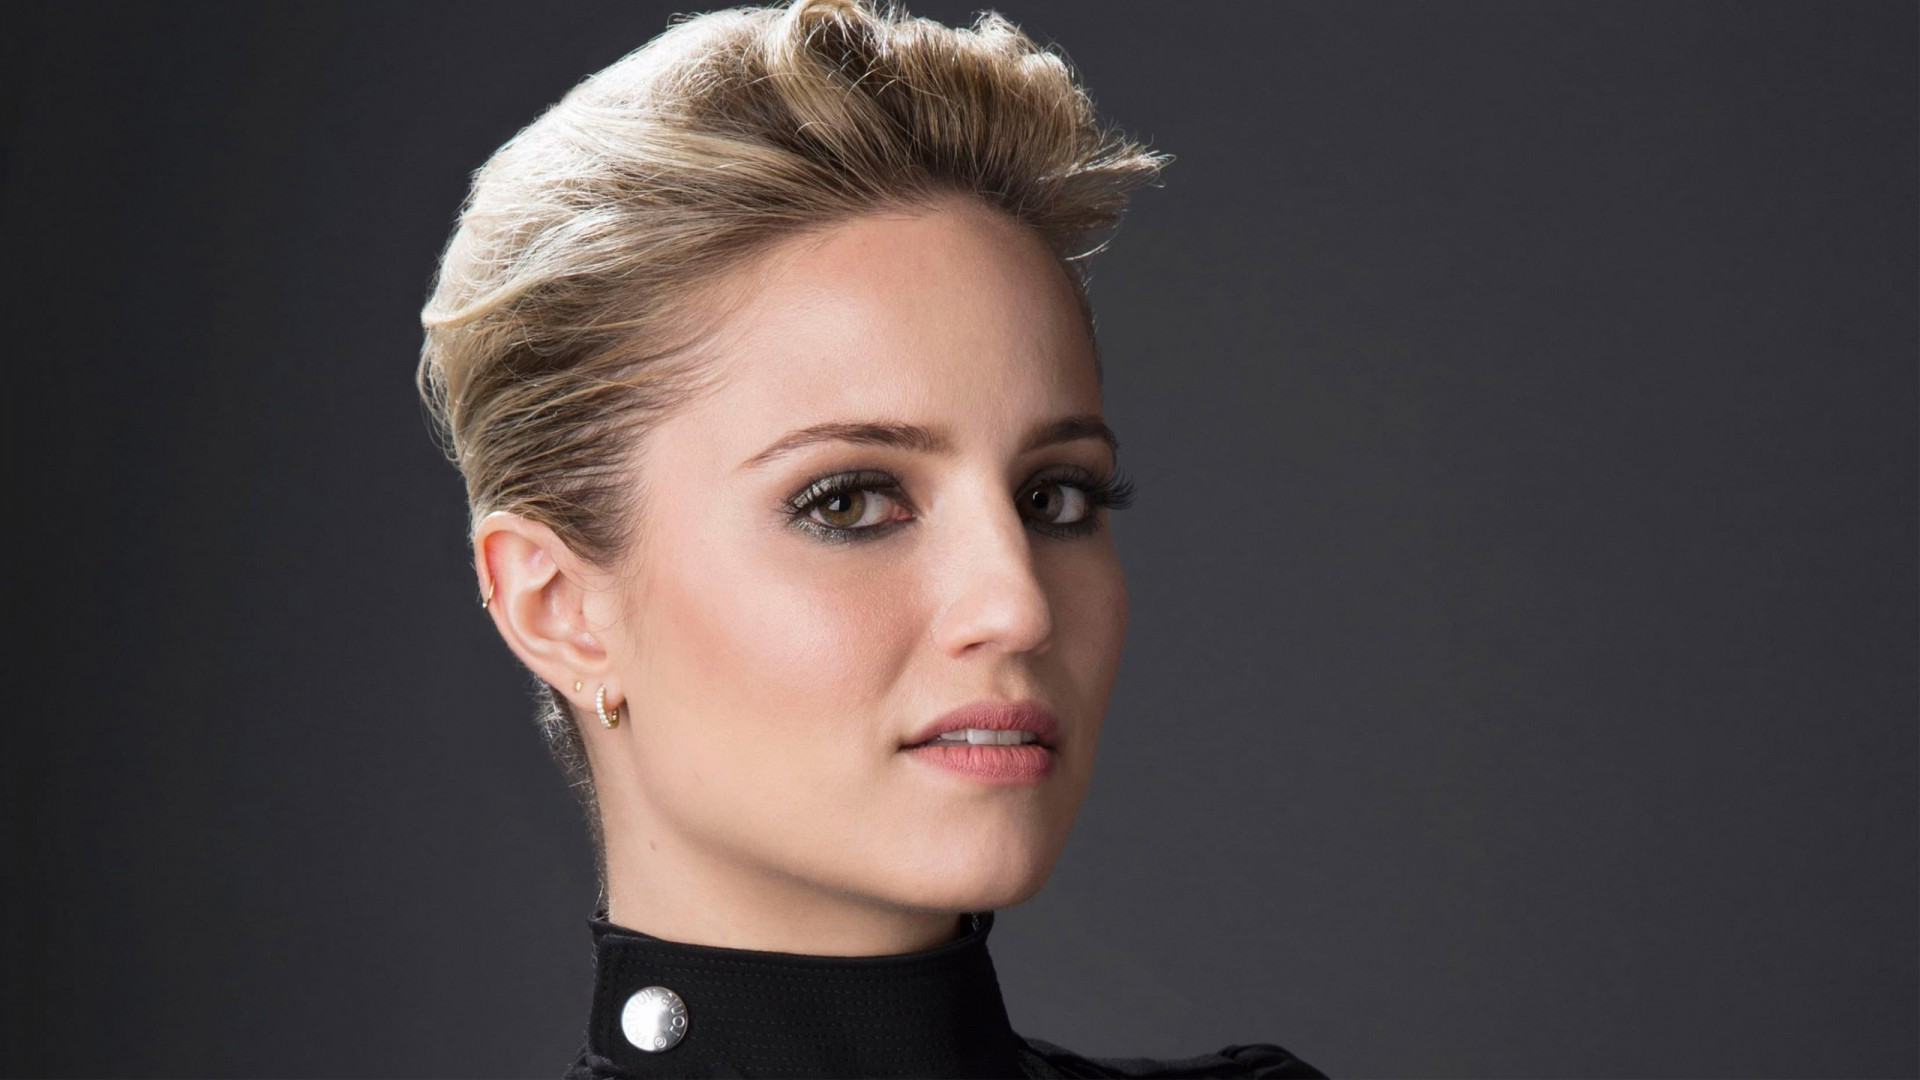 Cute Piano Wallpaper Dianna Agron 9 Wallpapers Hd Wallpapers Id 20175